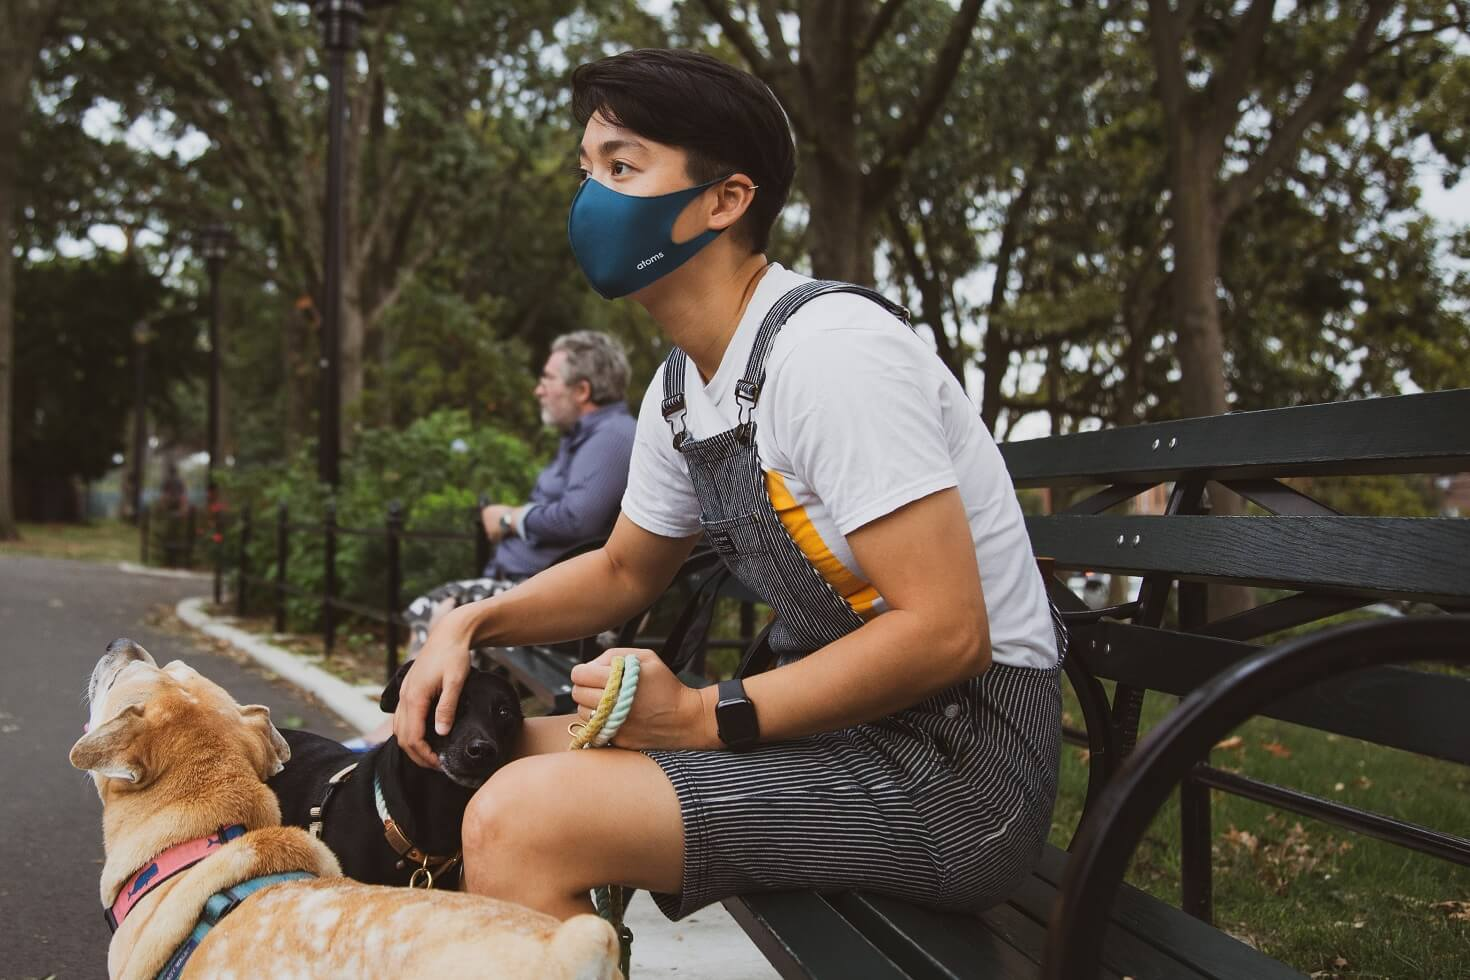 Man wearing mask in the park with his dog during Covid-19